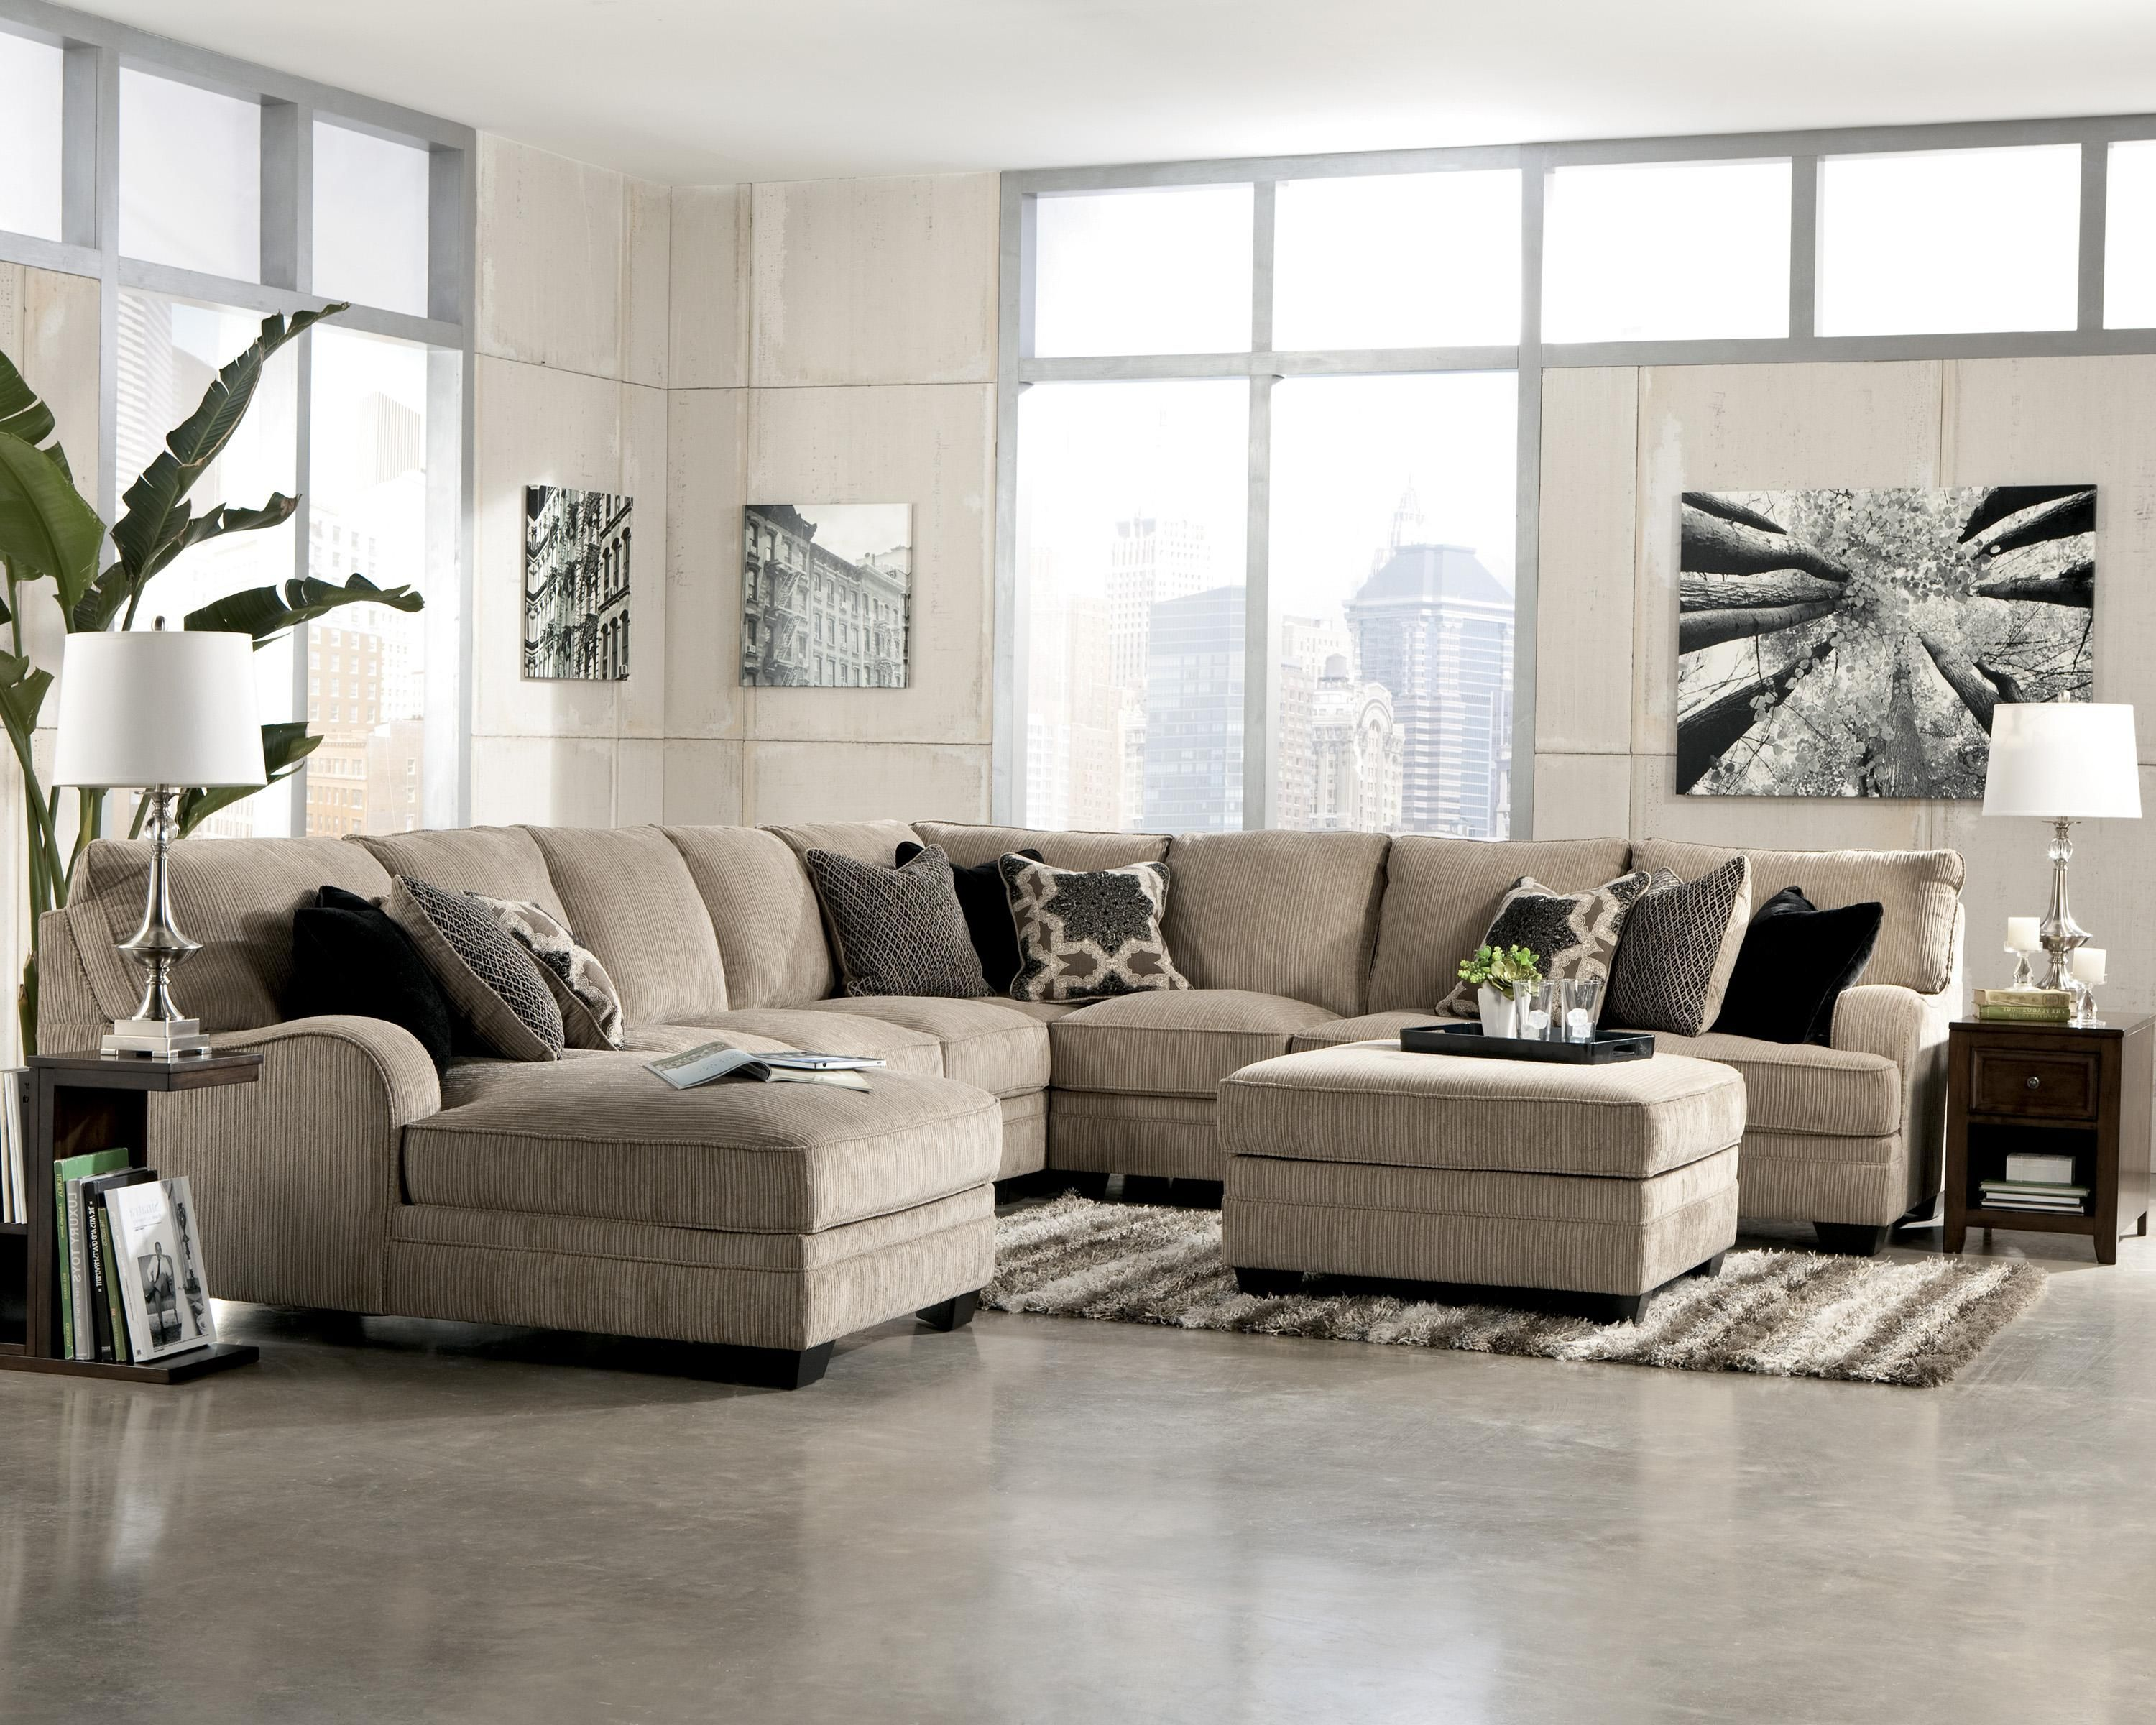 Katisha Platinum 5Piece Sectional Sofa with Left Chaise by